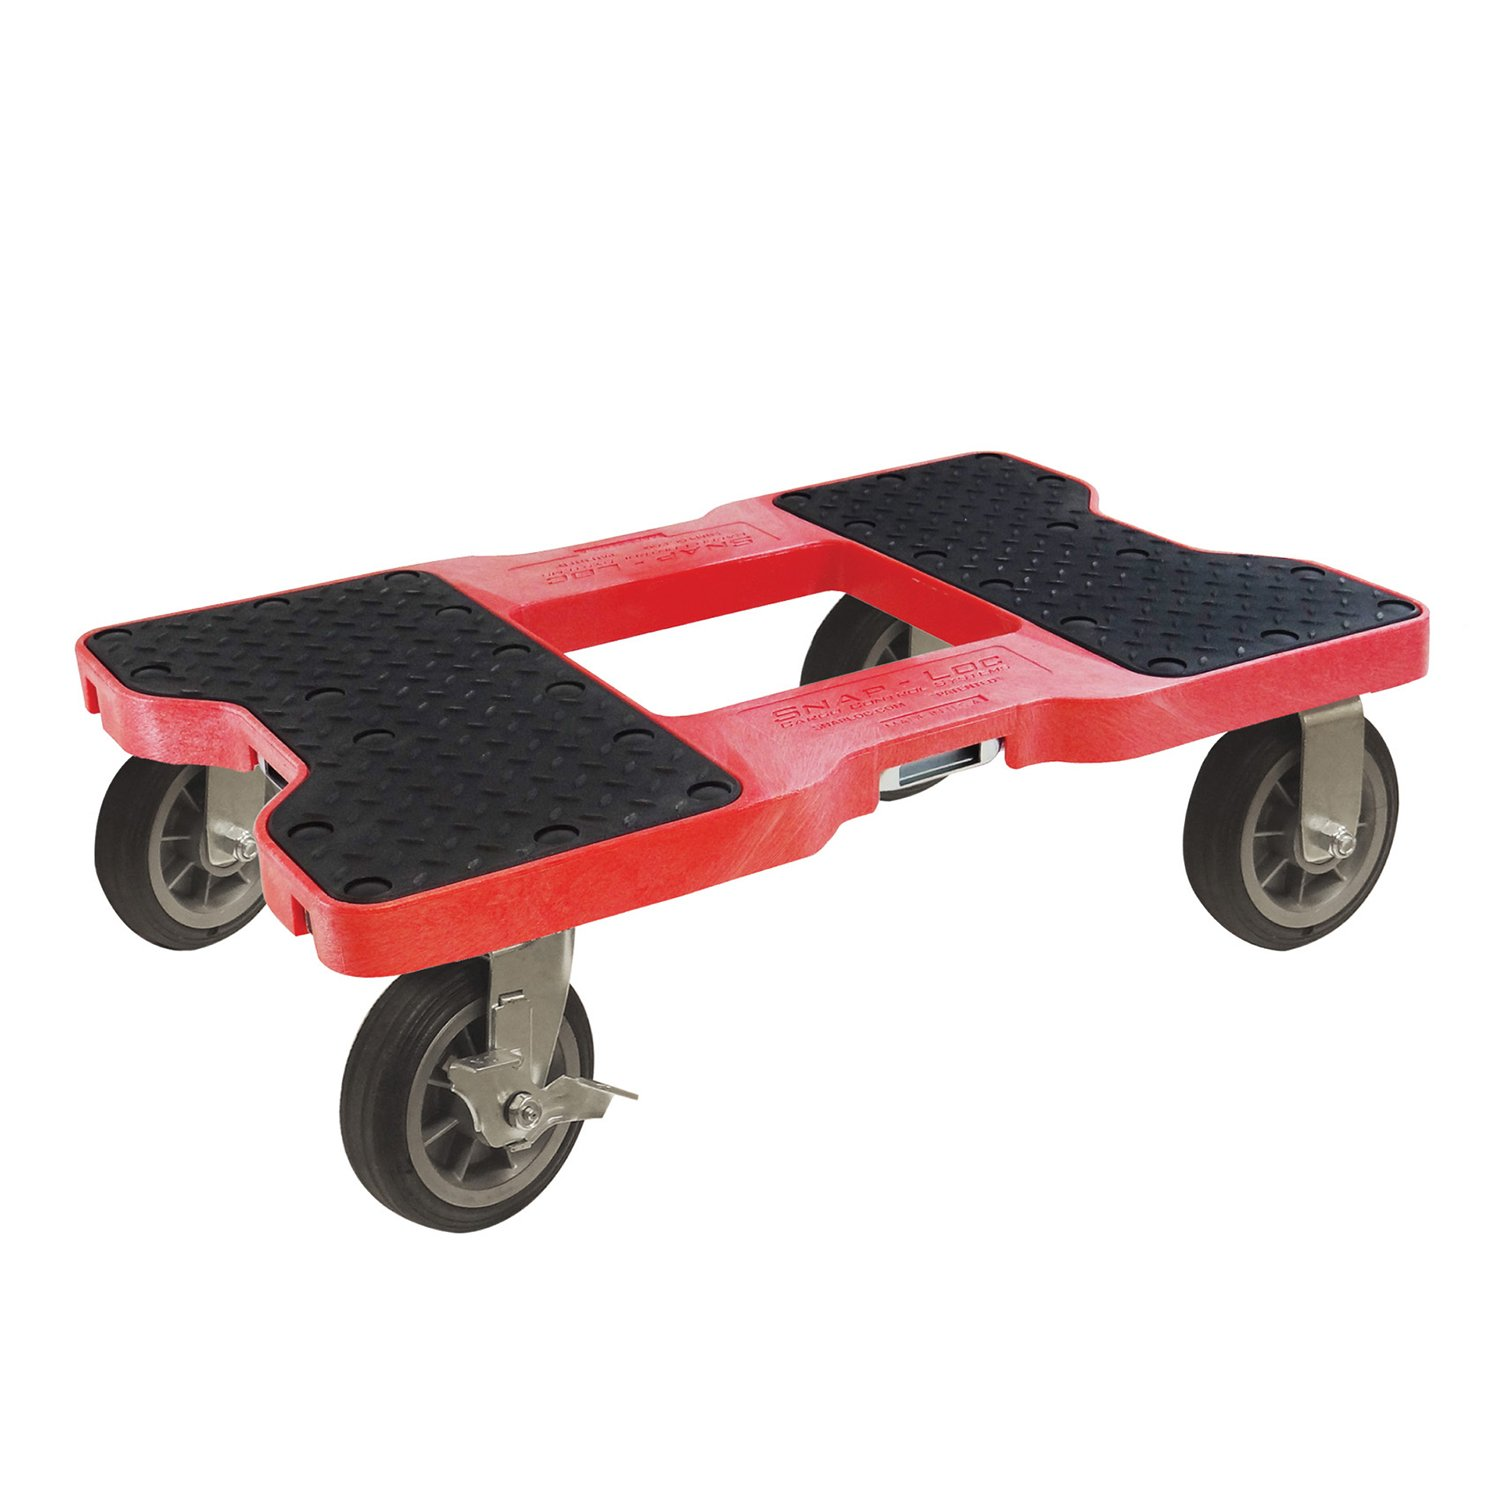 SNAP-LOC ALL-TERRAIN DOLLY RED (USA!) with 1500 lb Capacity, Steel Frame, 6 inch Casters and optional E-Strap Attachment